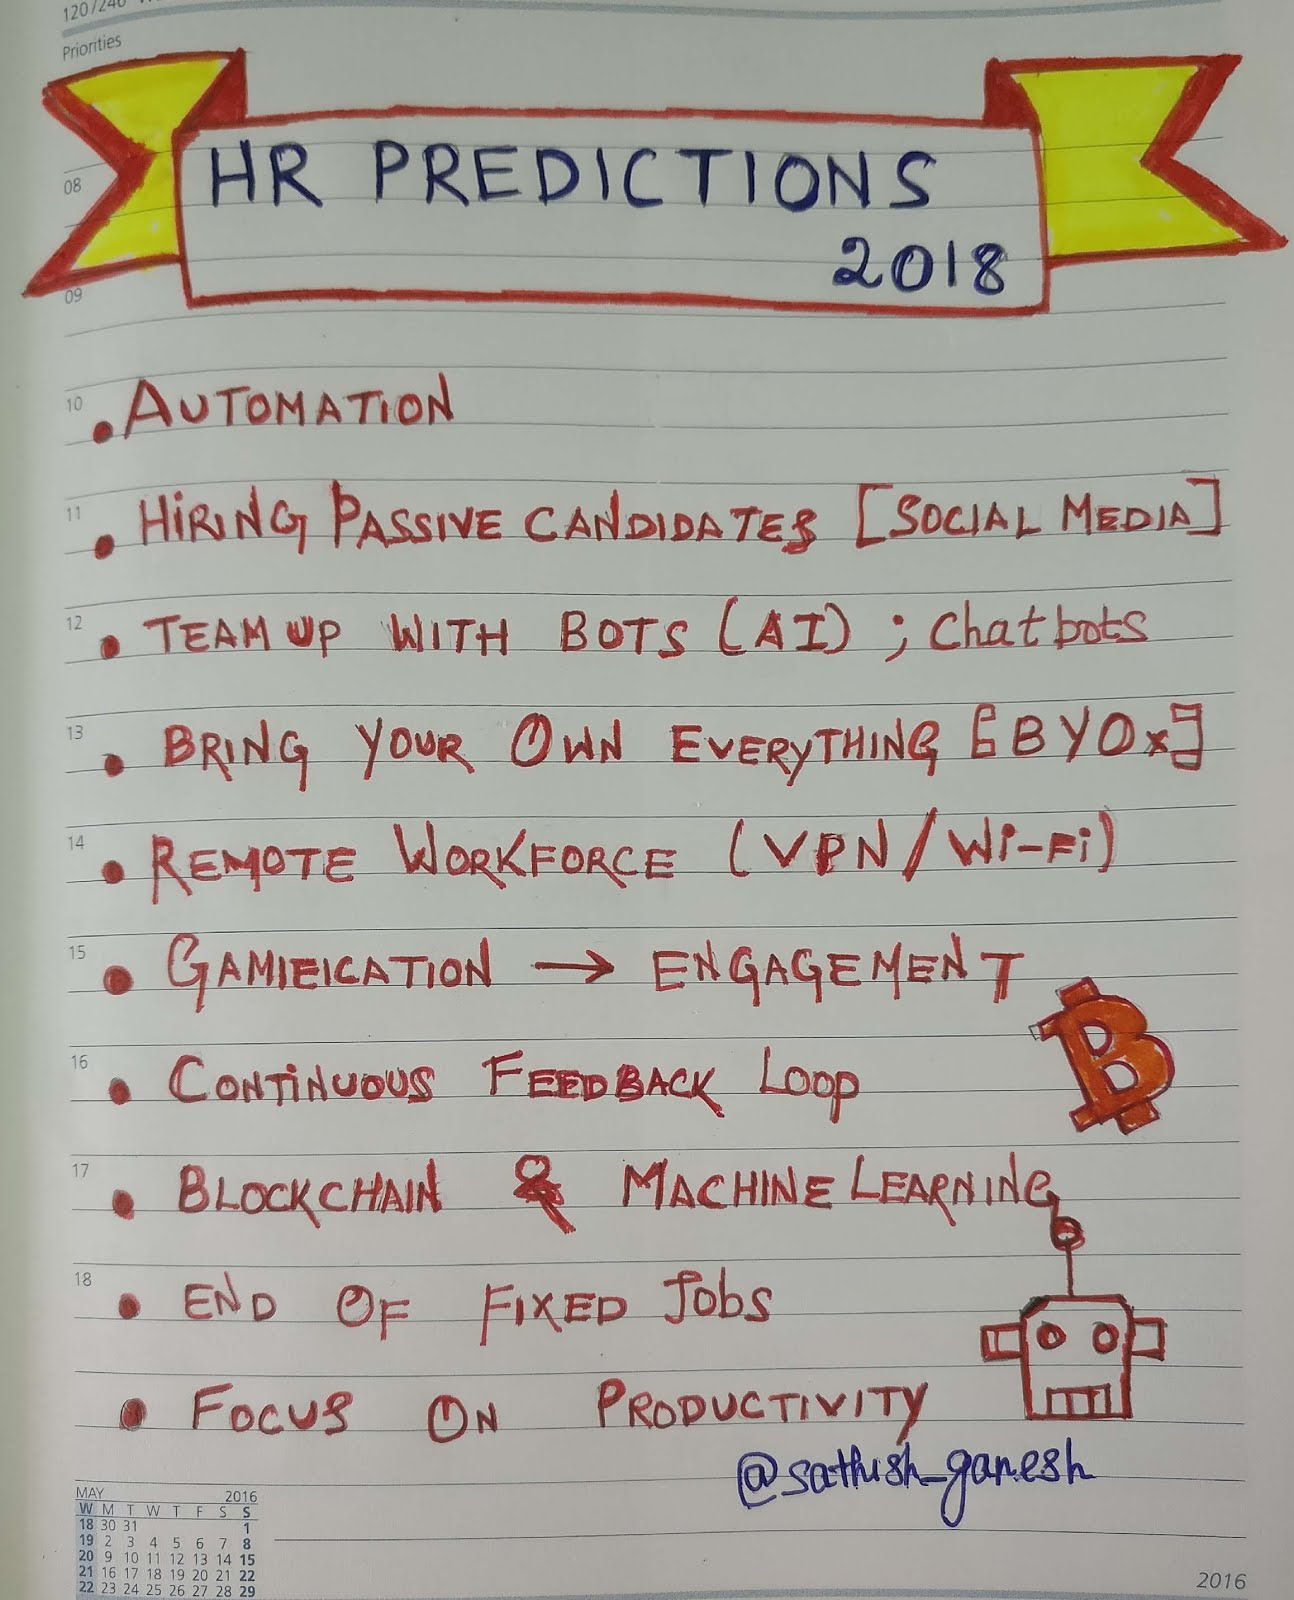 The Recruiter's Today: Sketchnotes: HR Predictions in 2018